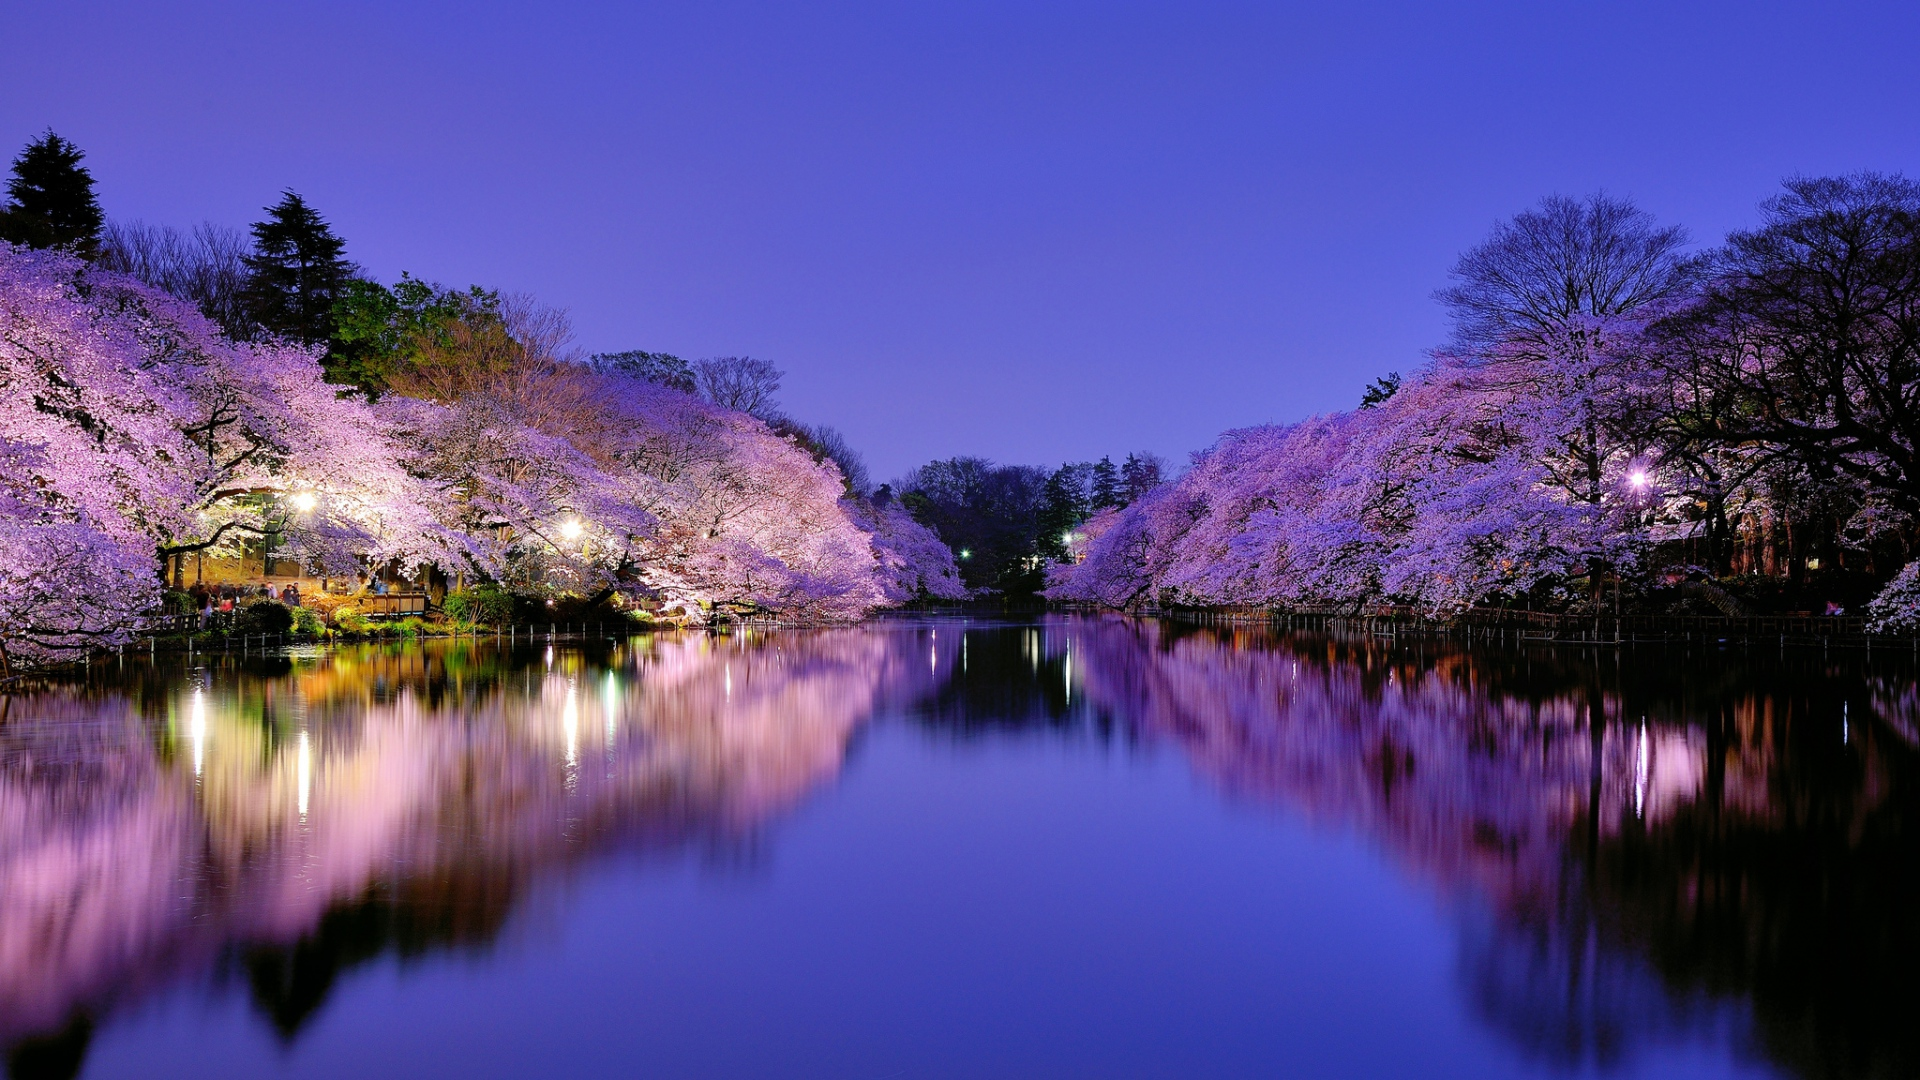 Download Wallpaper 1920x1080 Japan Osaka City Park Lake Light